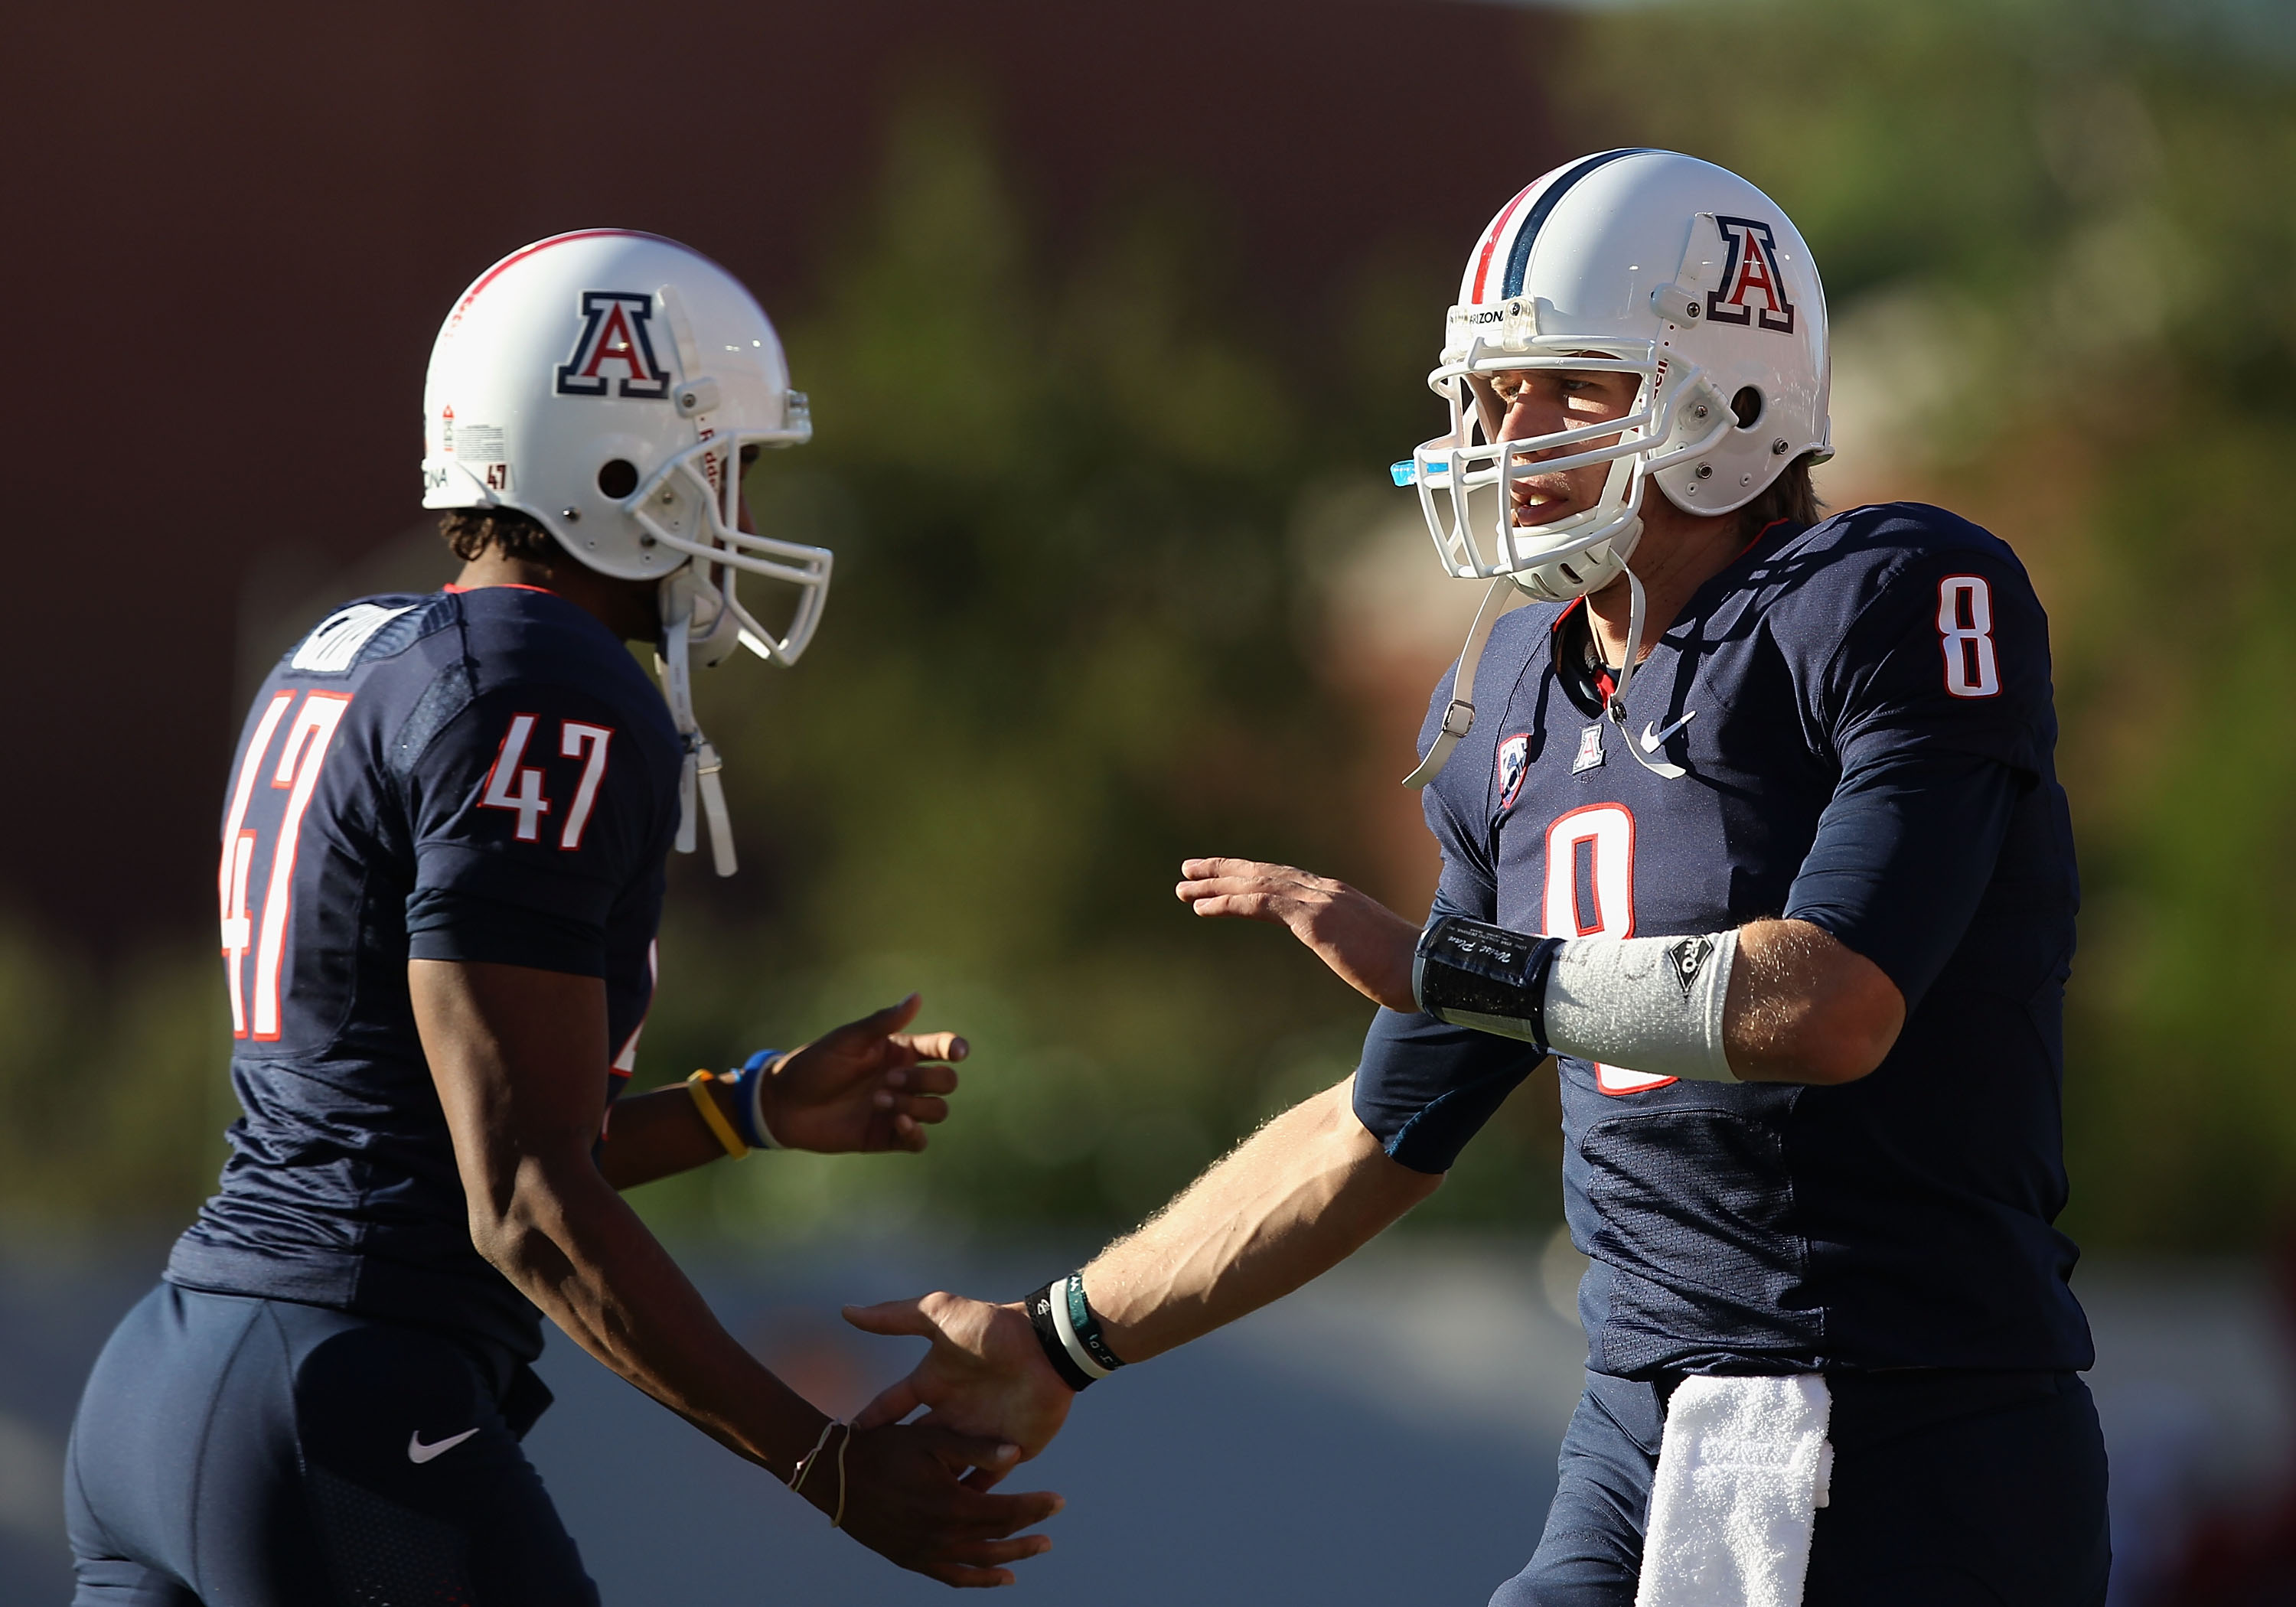 TUCSON, AZ - OCTOBER 09:  Quarterback Nick Foles #8 of the Arizona Wildcats celebrates with teammate Keenyn Crier #47 after the Wildcats scored a first quarter touchdown against the Oregon State Beavers during the college football game at Arizona Stadium